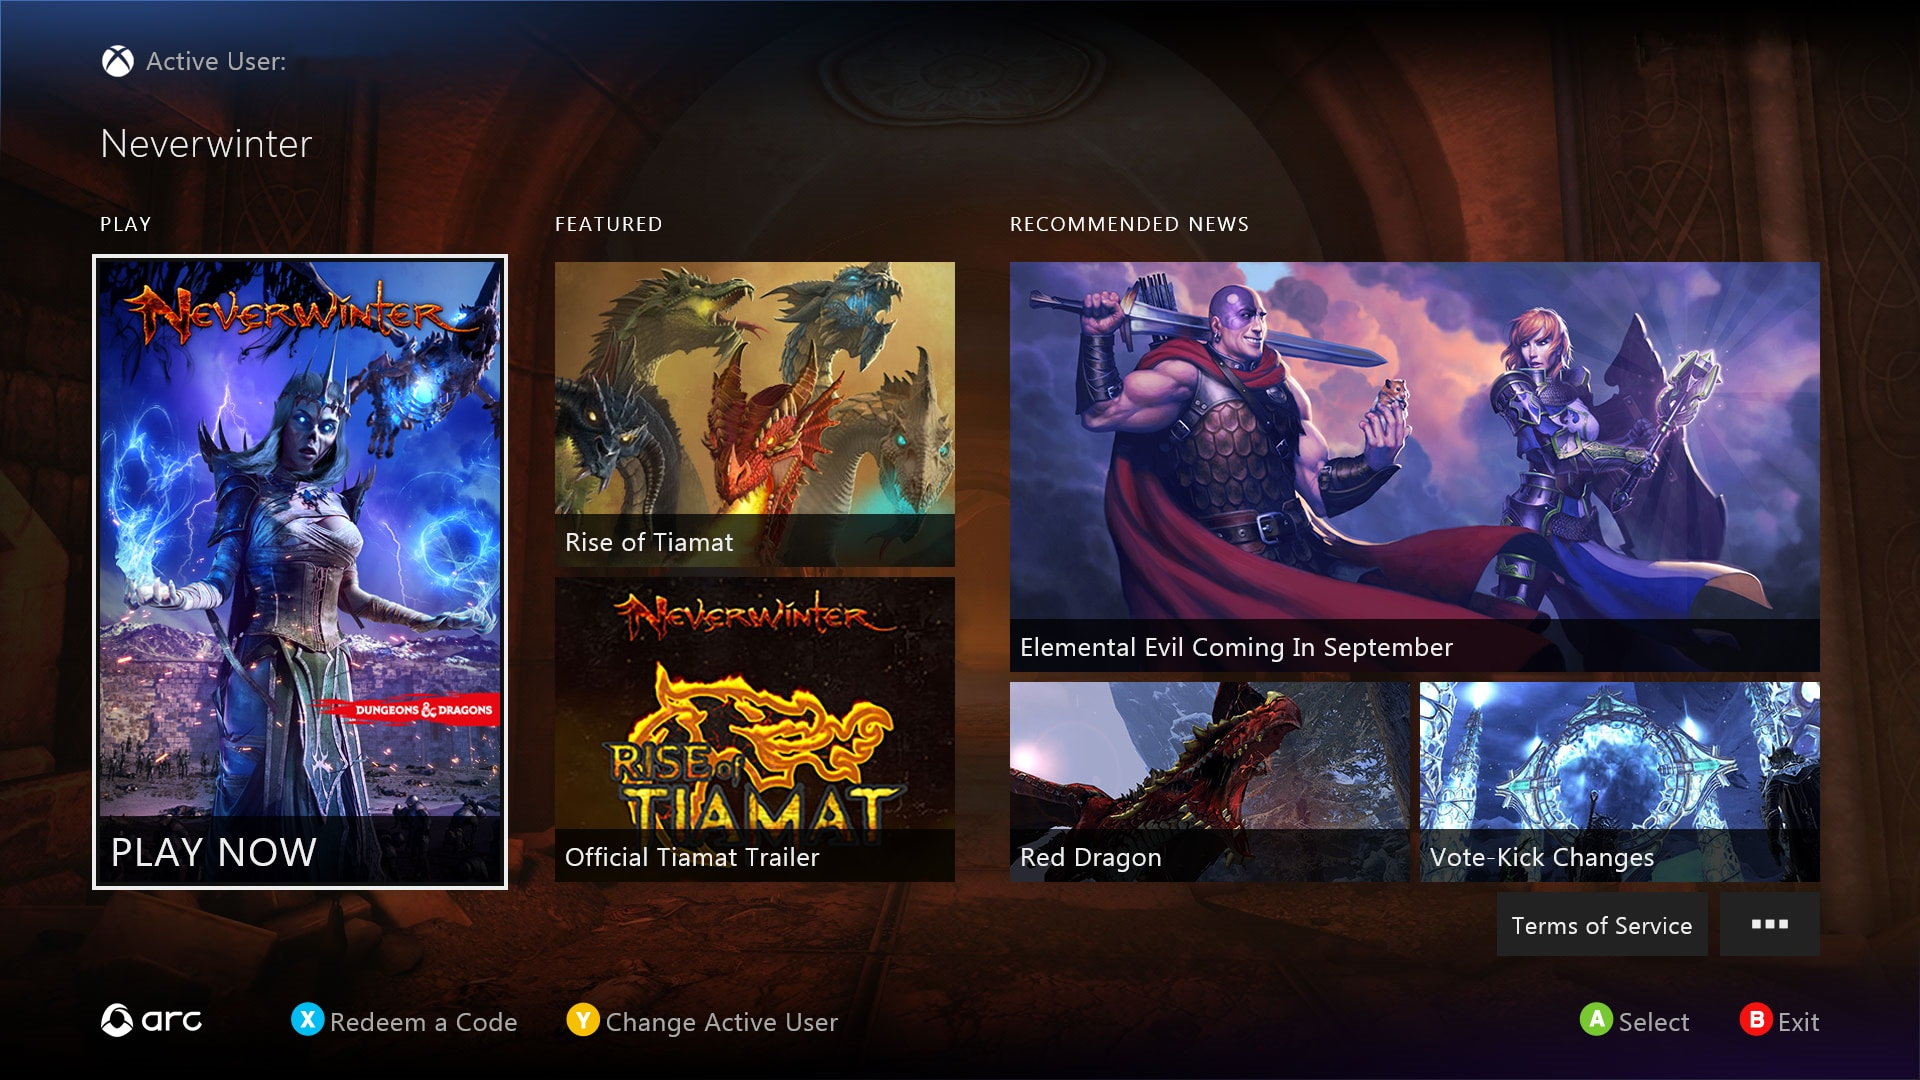 How to Install and Use the Arc App on Xbox One | Neverwinter